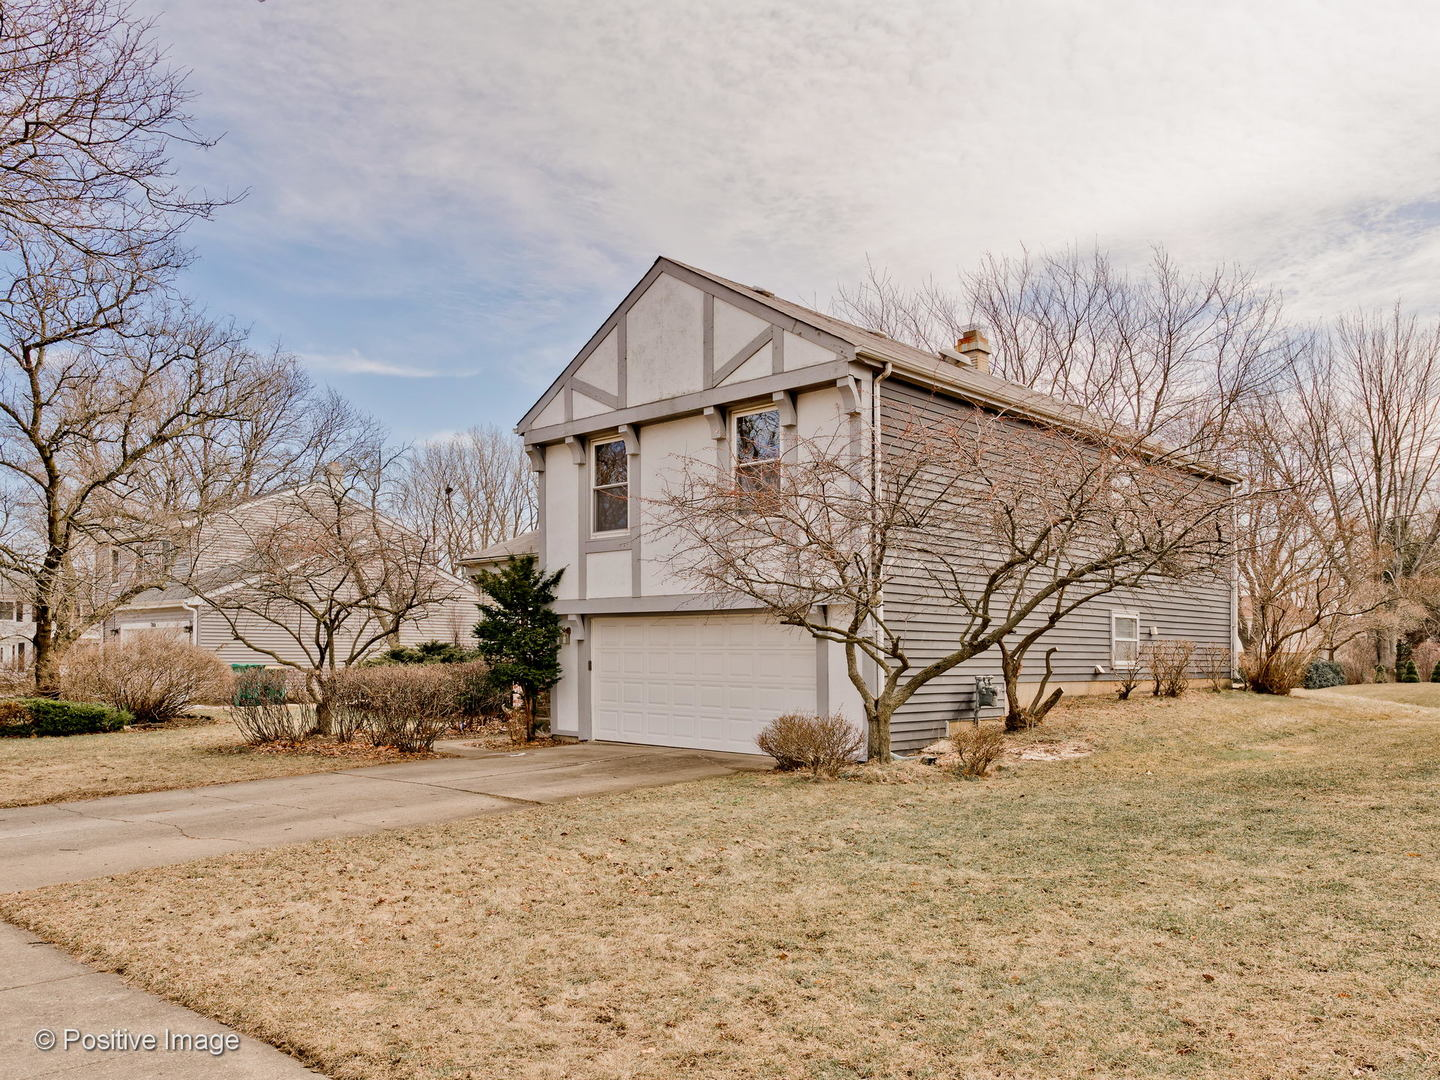 710 Thompson ,Buffalo Grove, Illinois 60089